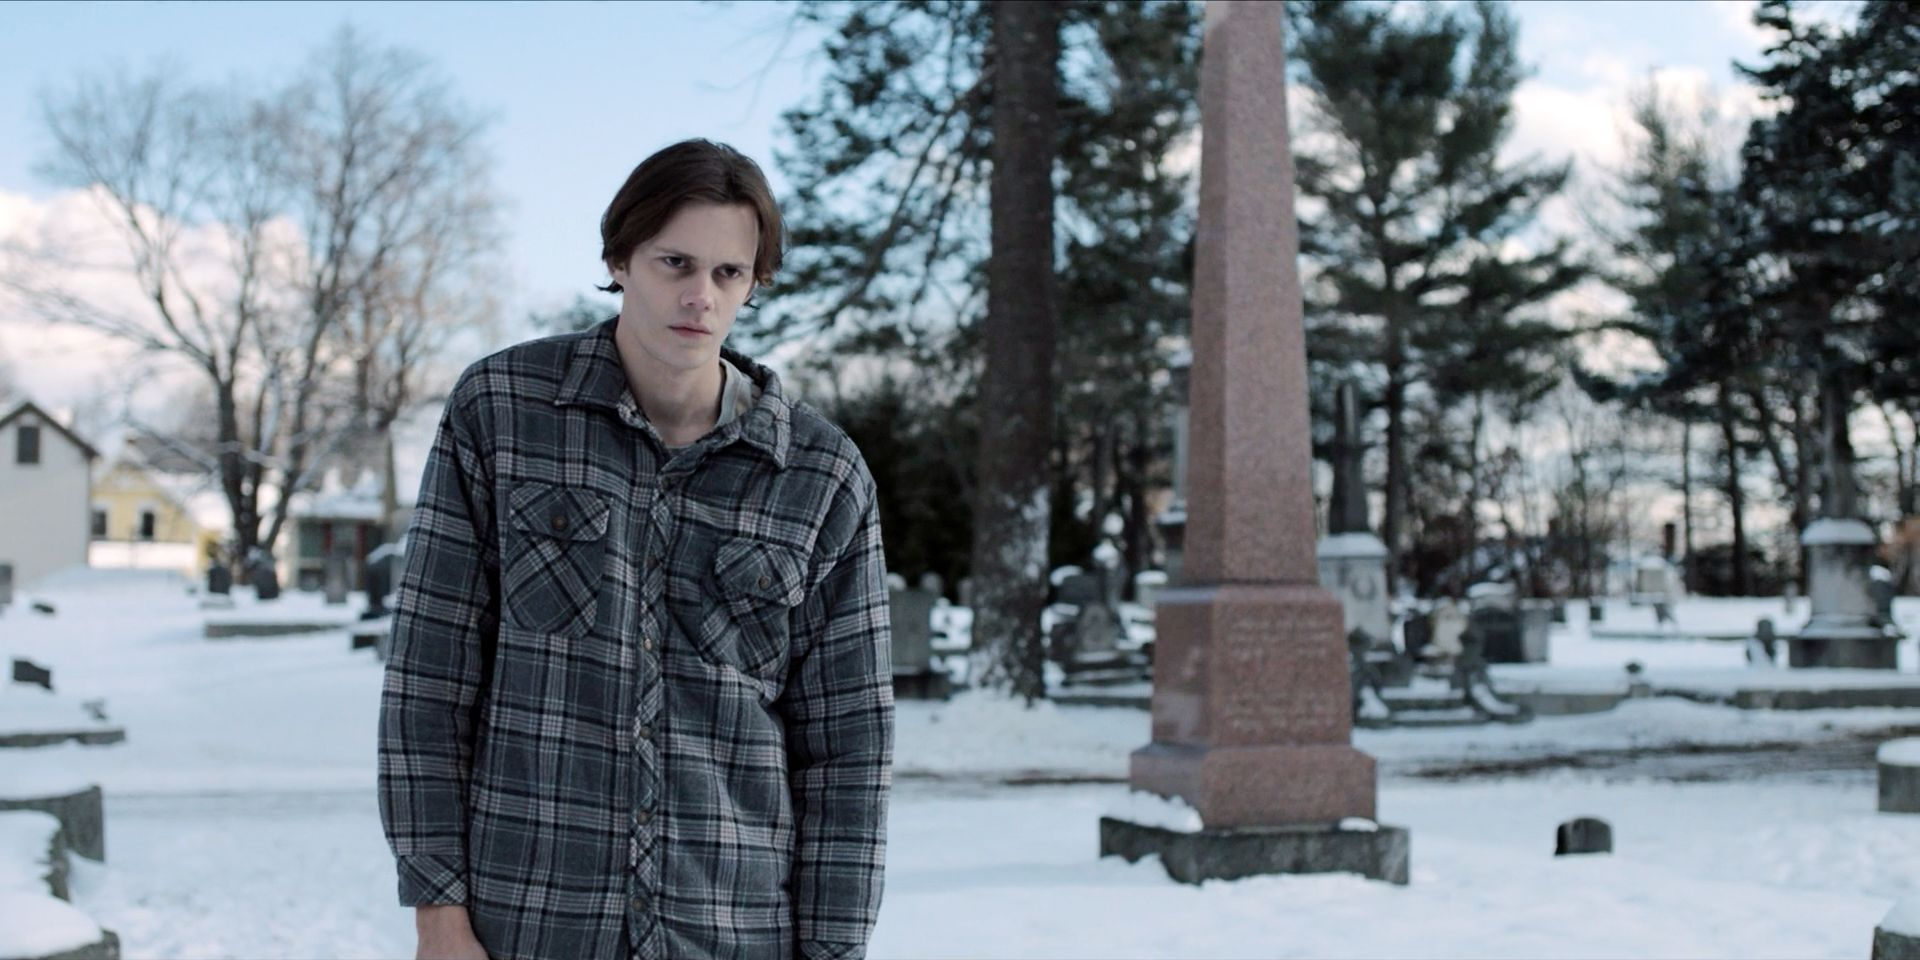 Castle Rock Show Summary, Upcoming Episodes and TV Guide